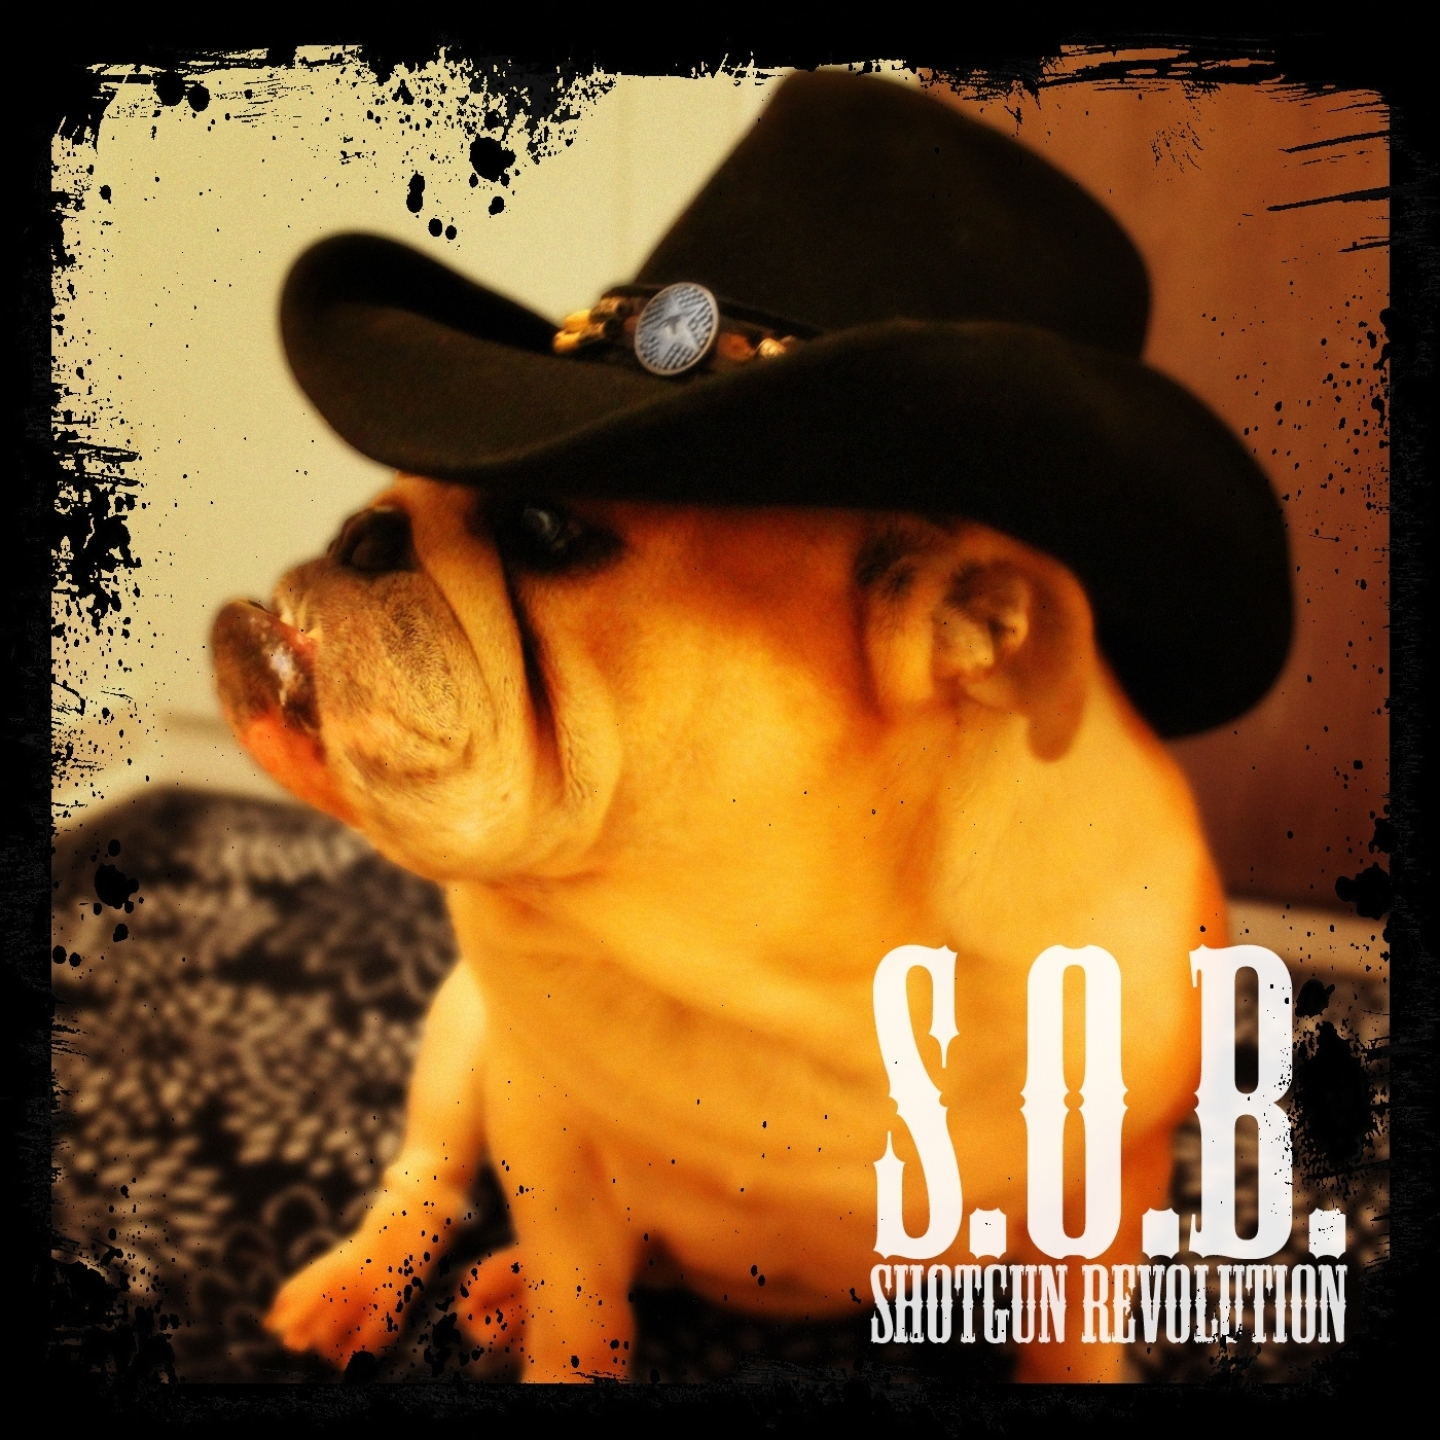 Shotgun Revolution – 'S.O.B.' (Single)